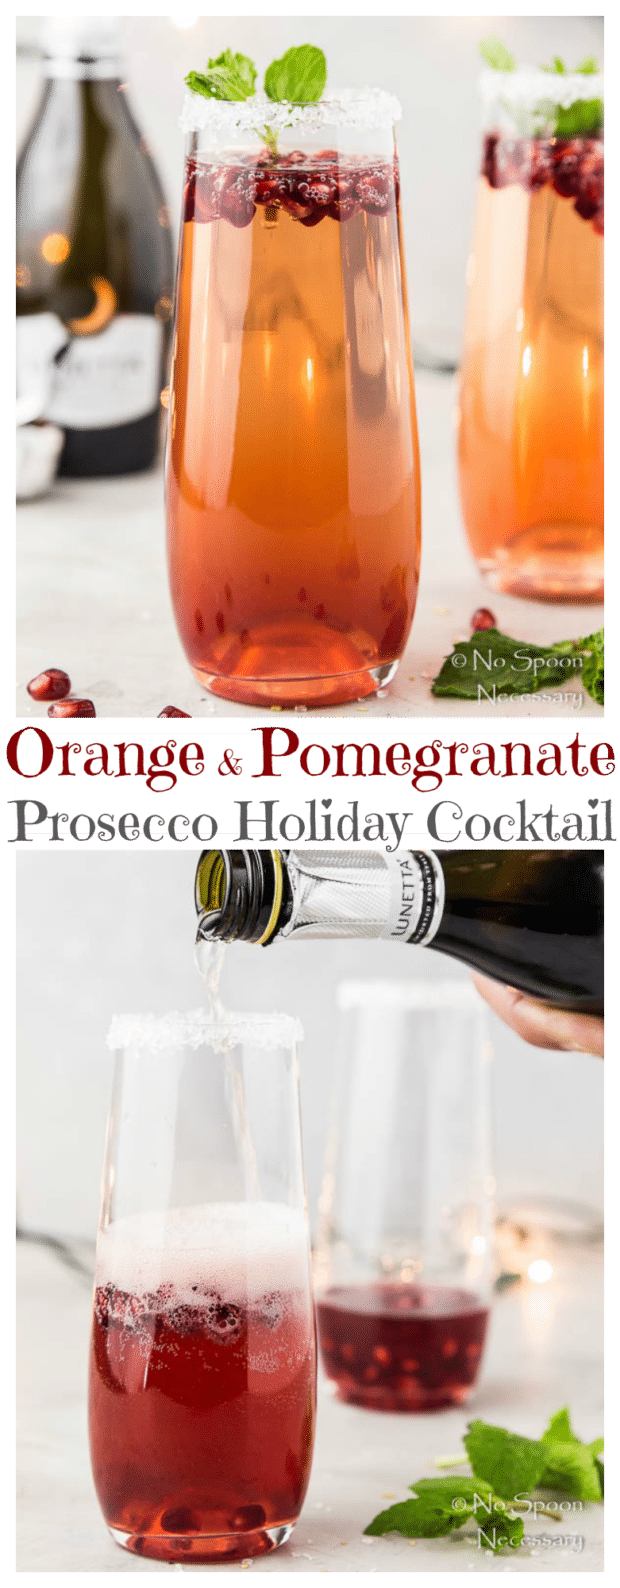 Orange & Pomegranate Prosecco Holiday Cocktail